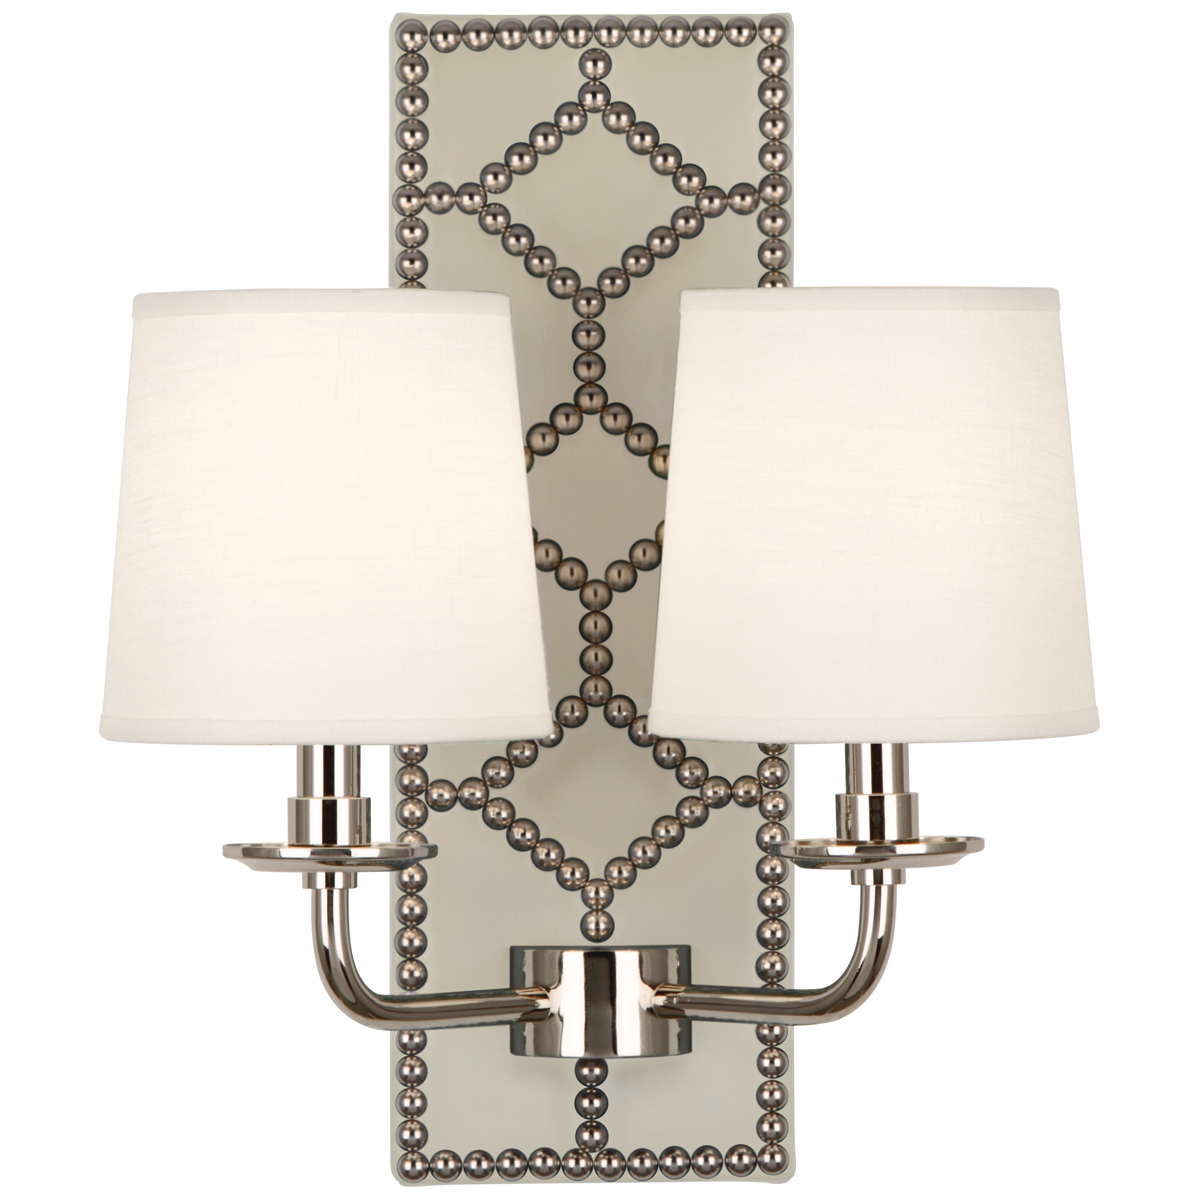 Williamsburg Lightfoot Wall Sconce Style #S1032